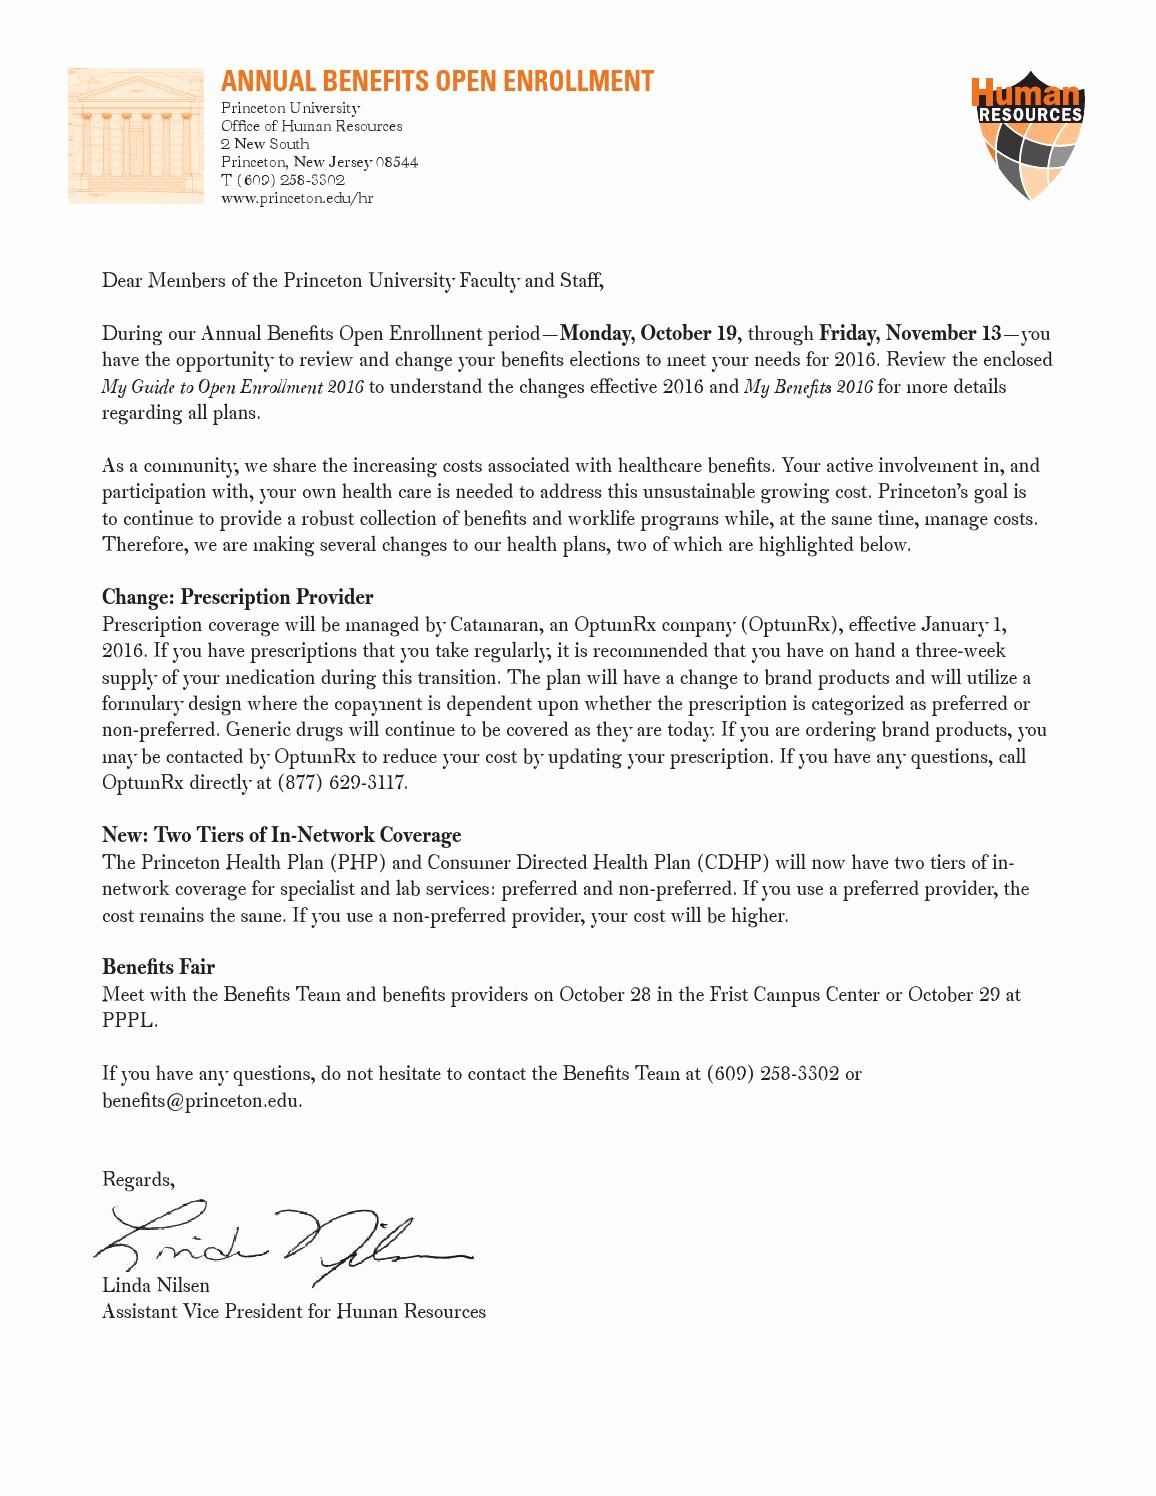 Open Enrollment Letters to Employees Unique Open Enrollment Cover Letter for 2016 by Princeton